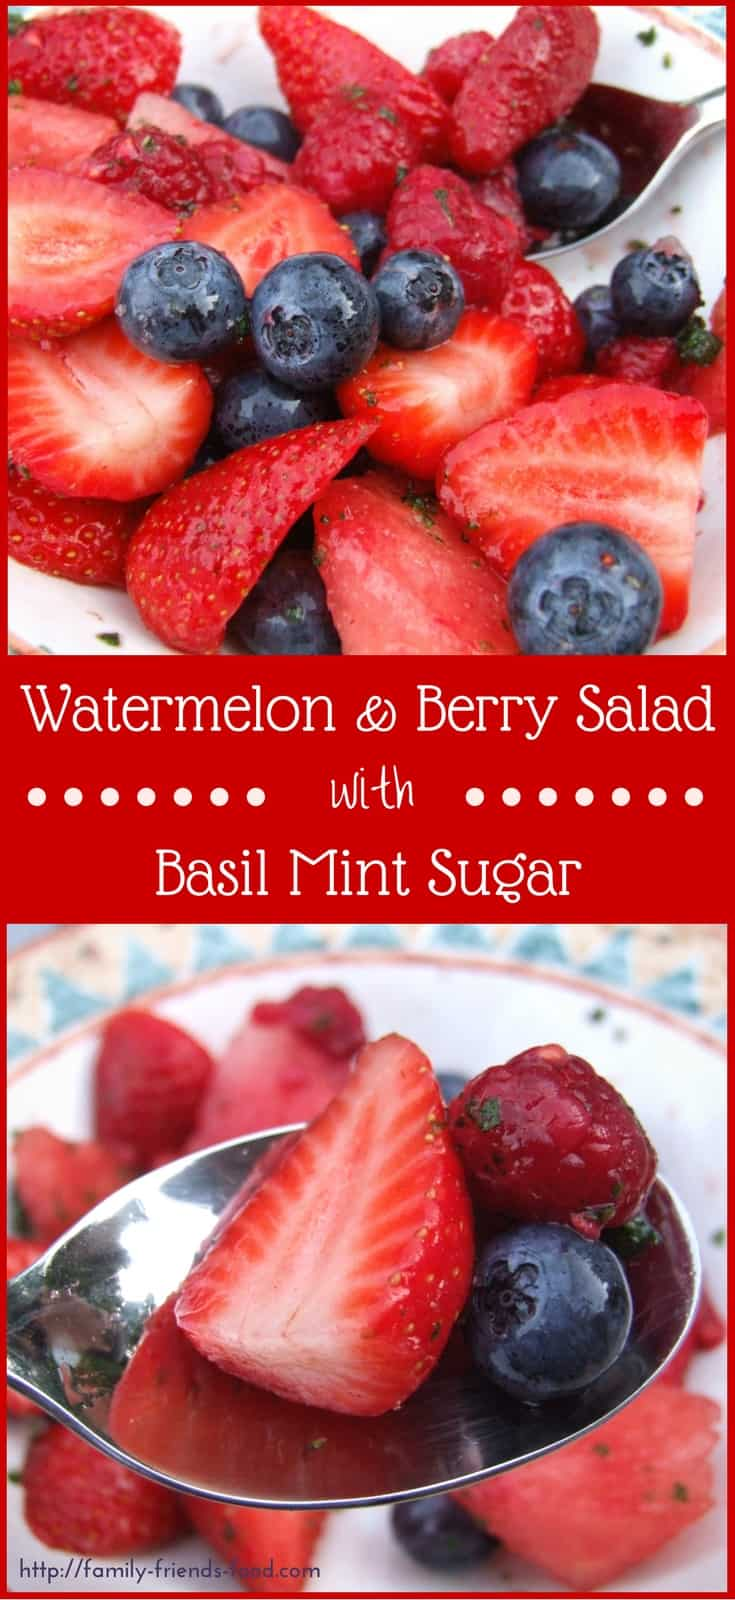 Super refreshing and amazingly delicious. The watermelon & summer berries are sweet and full of flavour while the herby sugar adds zinginess and juice. Yum!